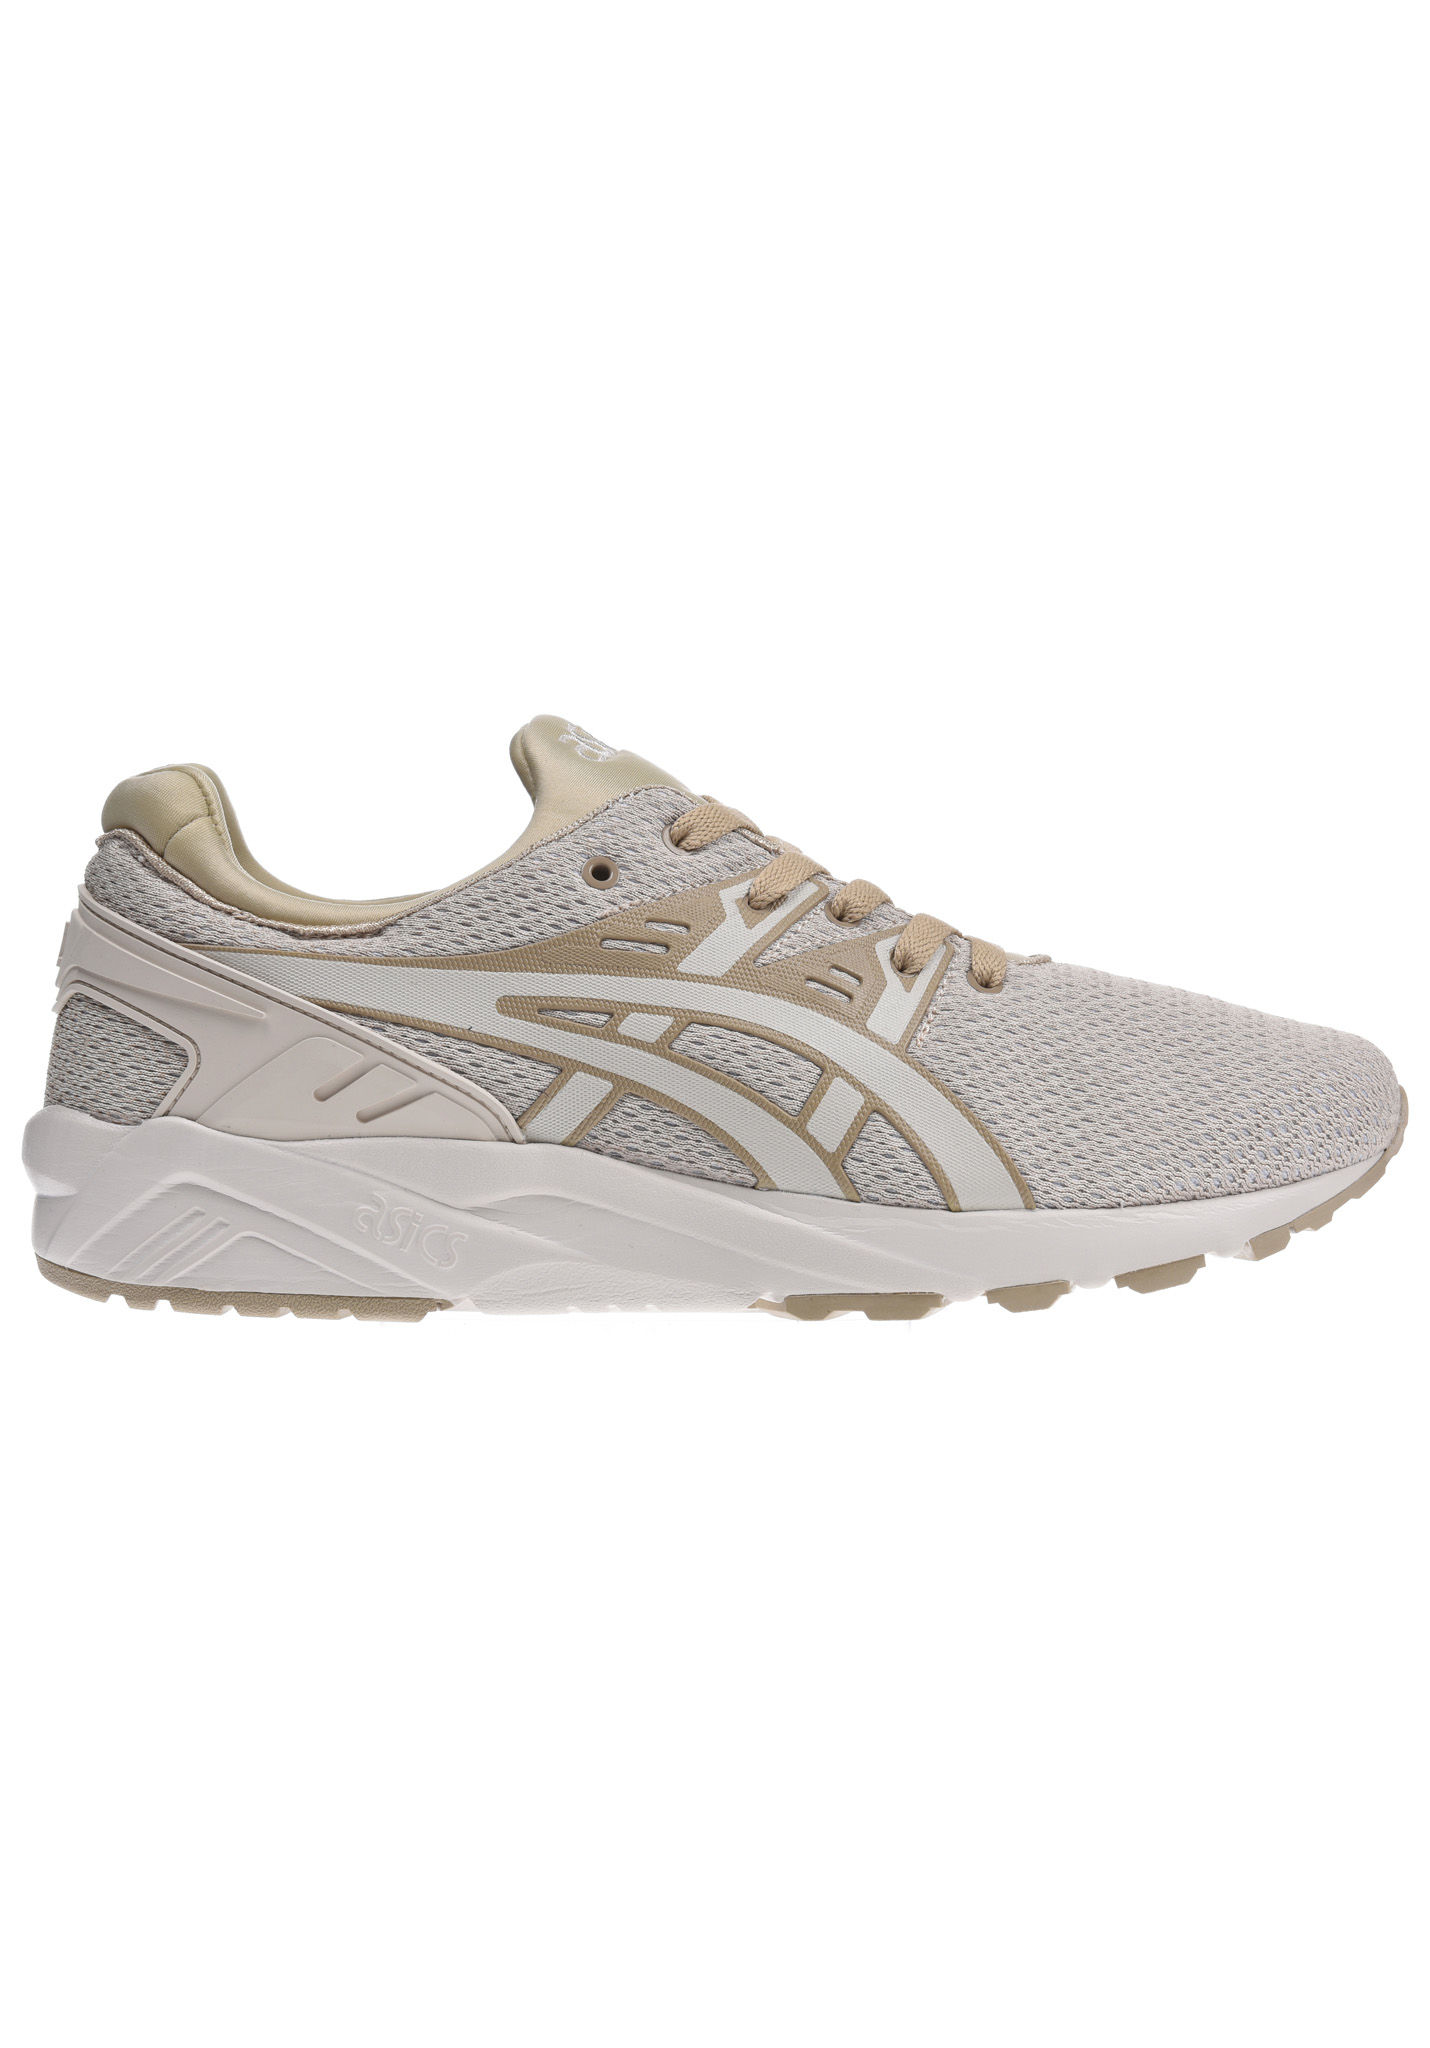 Asics Tiger Gel-Kayano Trainer Evo - Baskets pour Homme - Beige - Planet  Sports daaaeb4634be